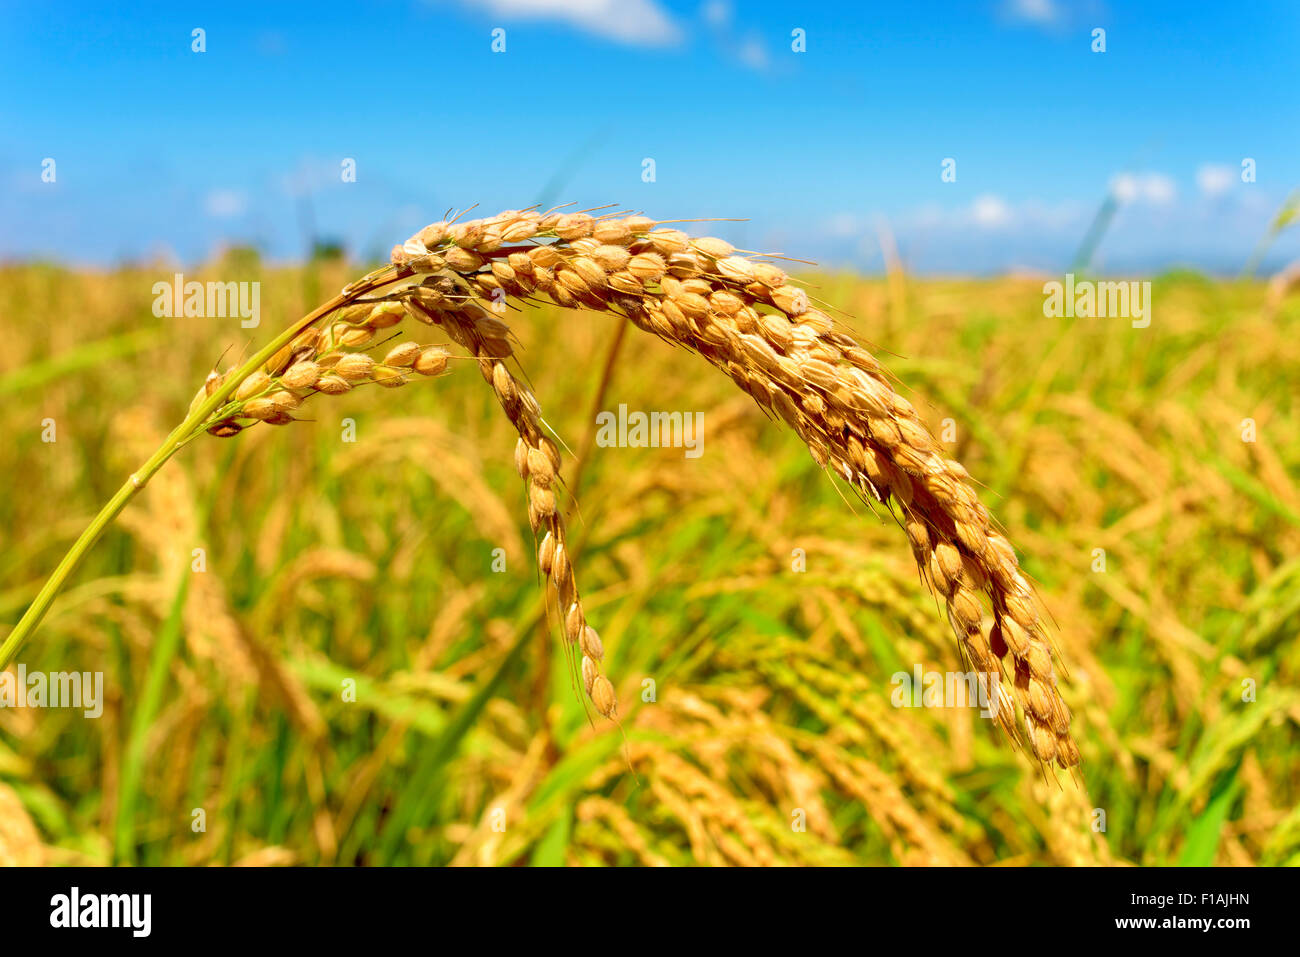 closeup of a rice plant in a paddy field in the Ebro Delta, in Catalonia, Spain - Stock Image